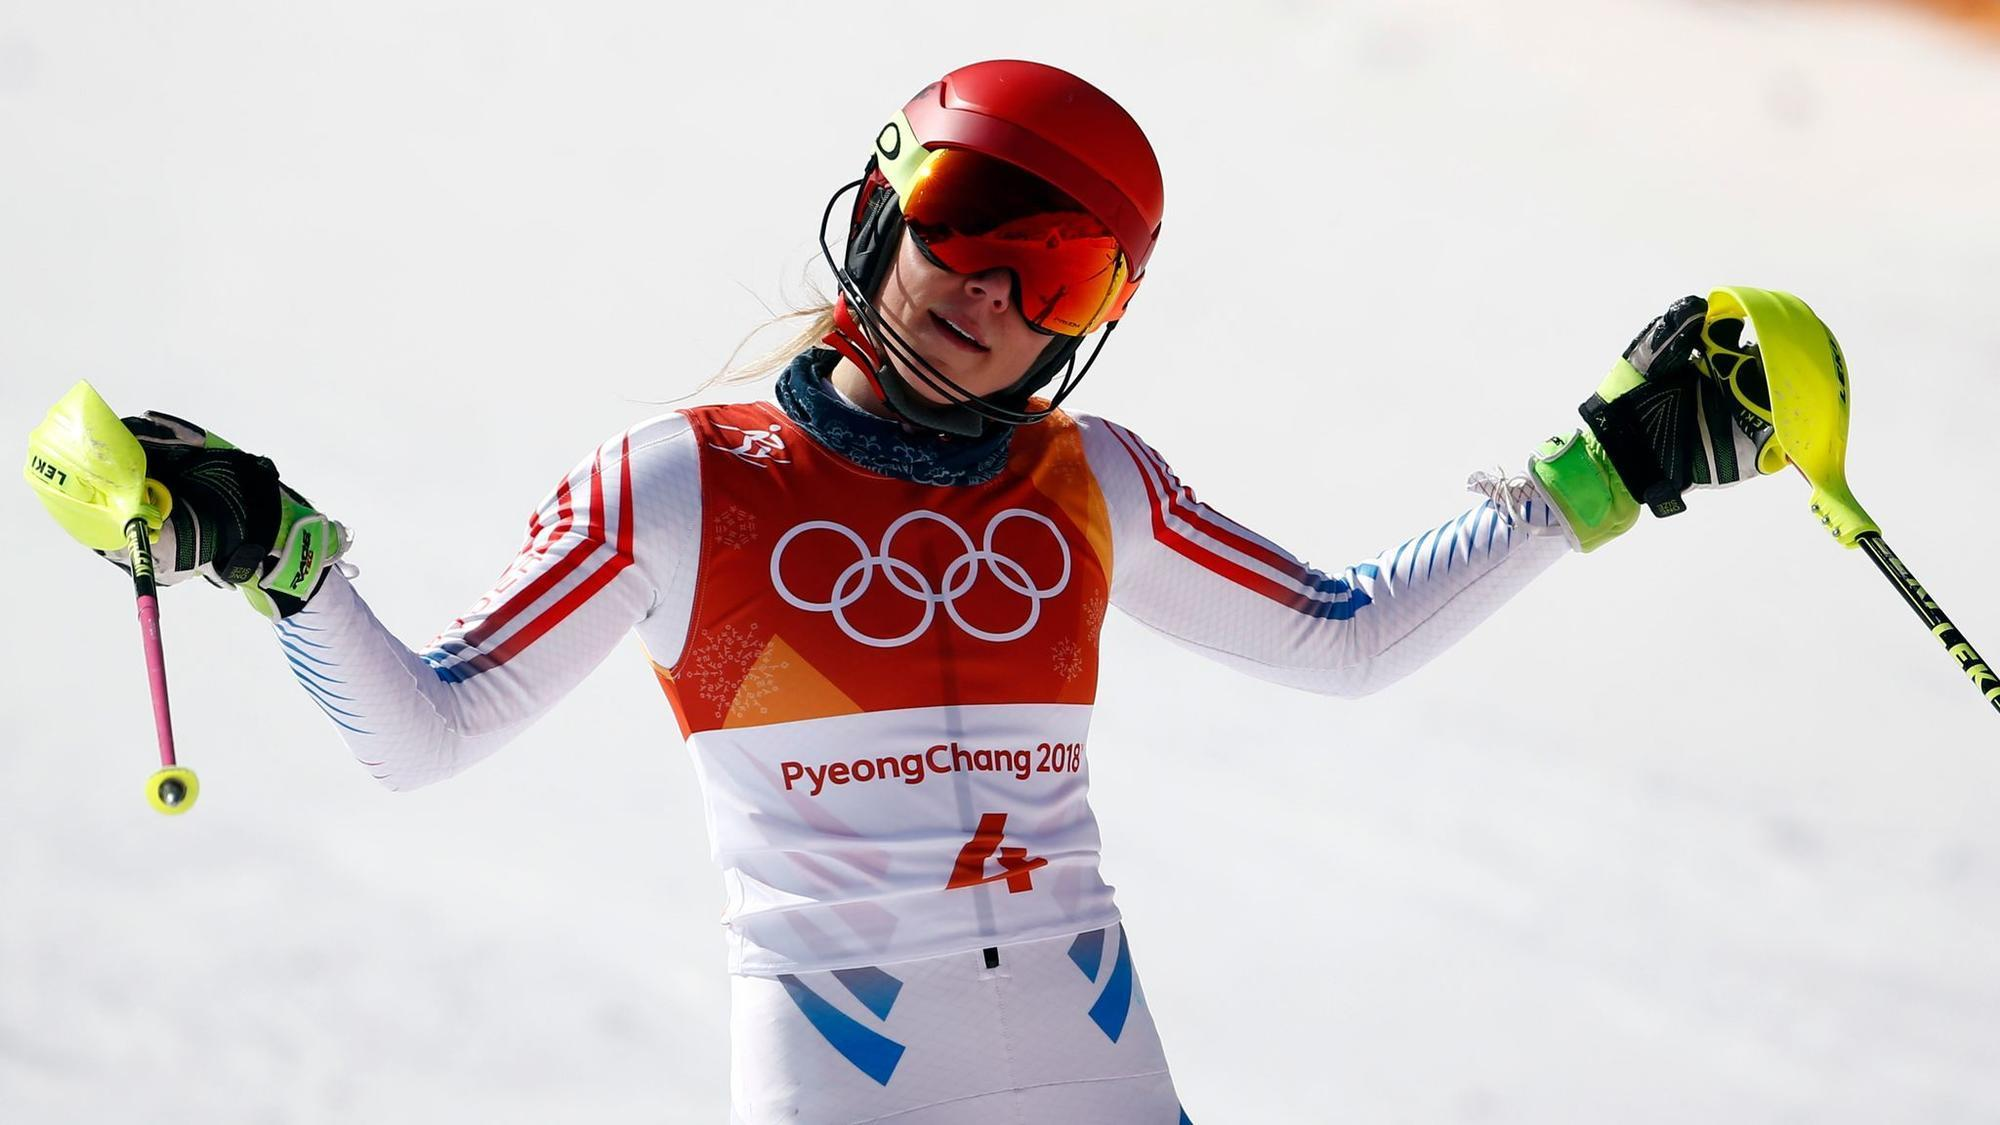 Like many great champions, Mikaela Shiffrin is compelling ...